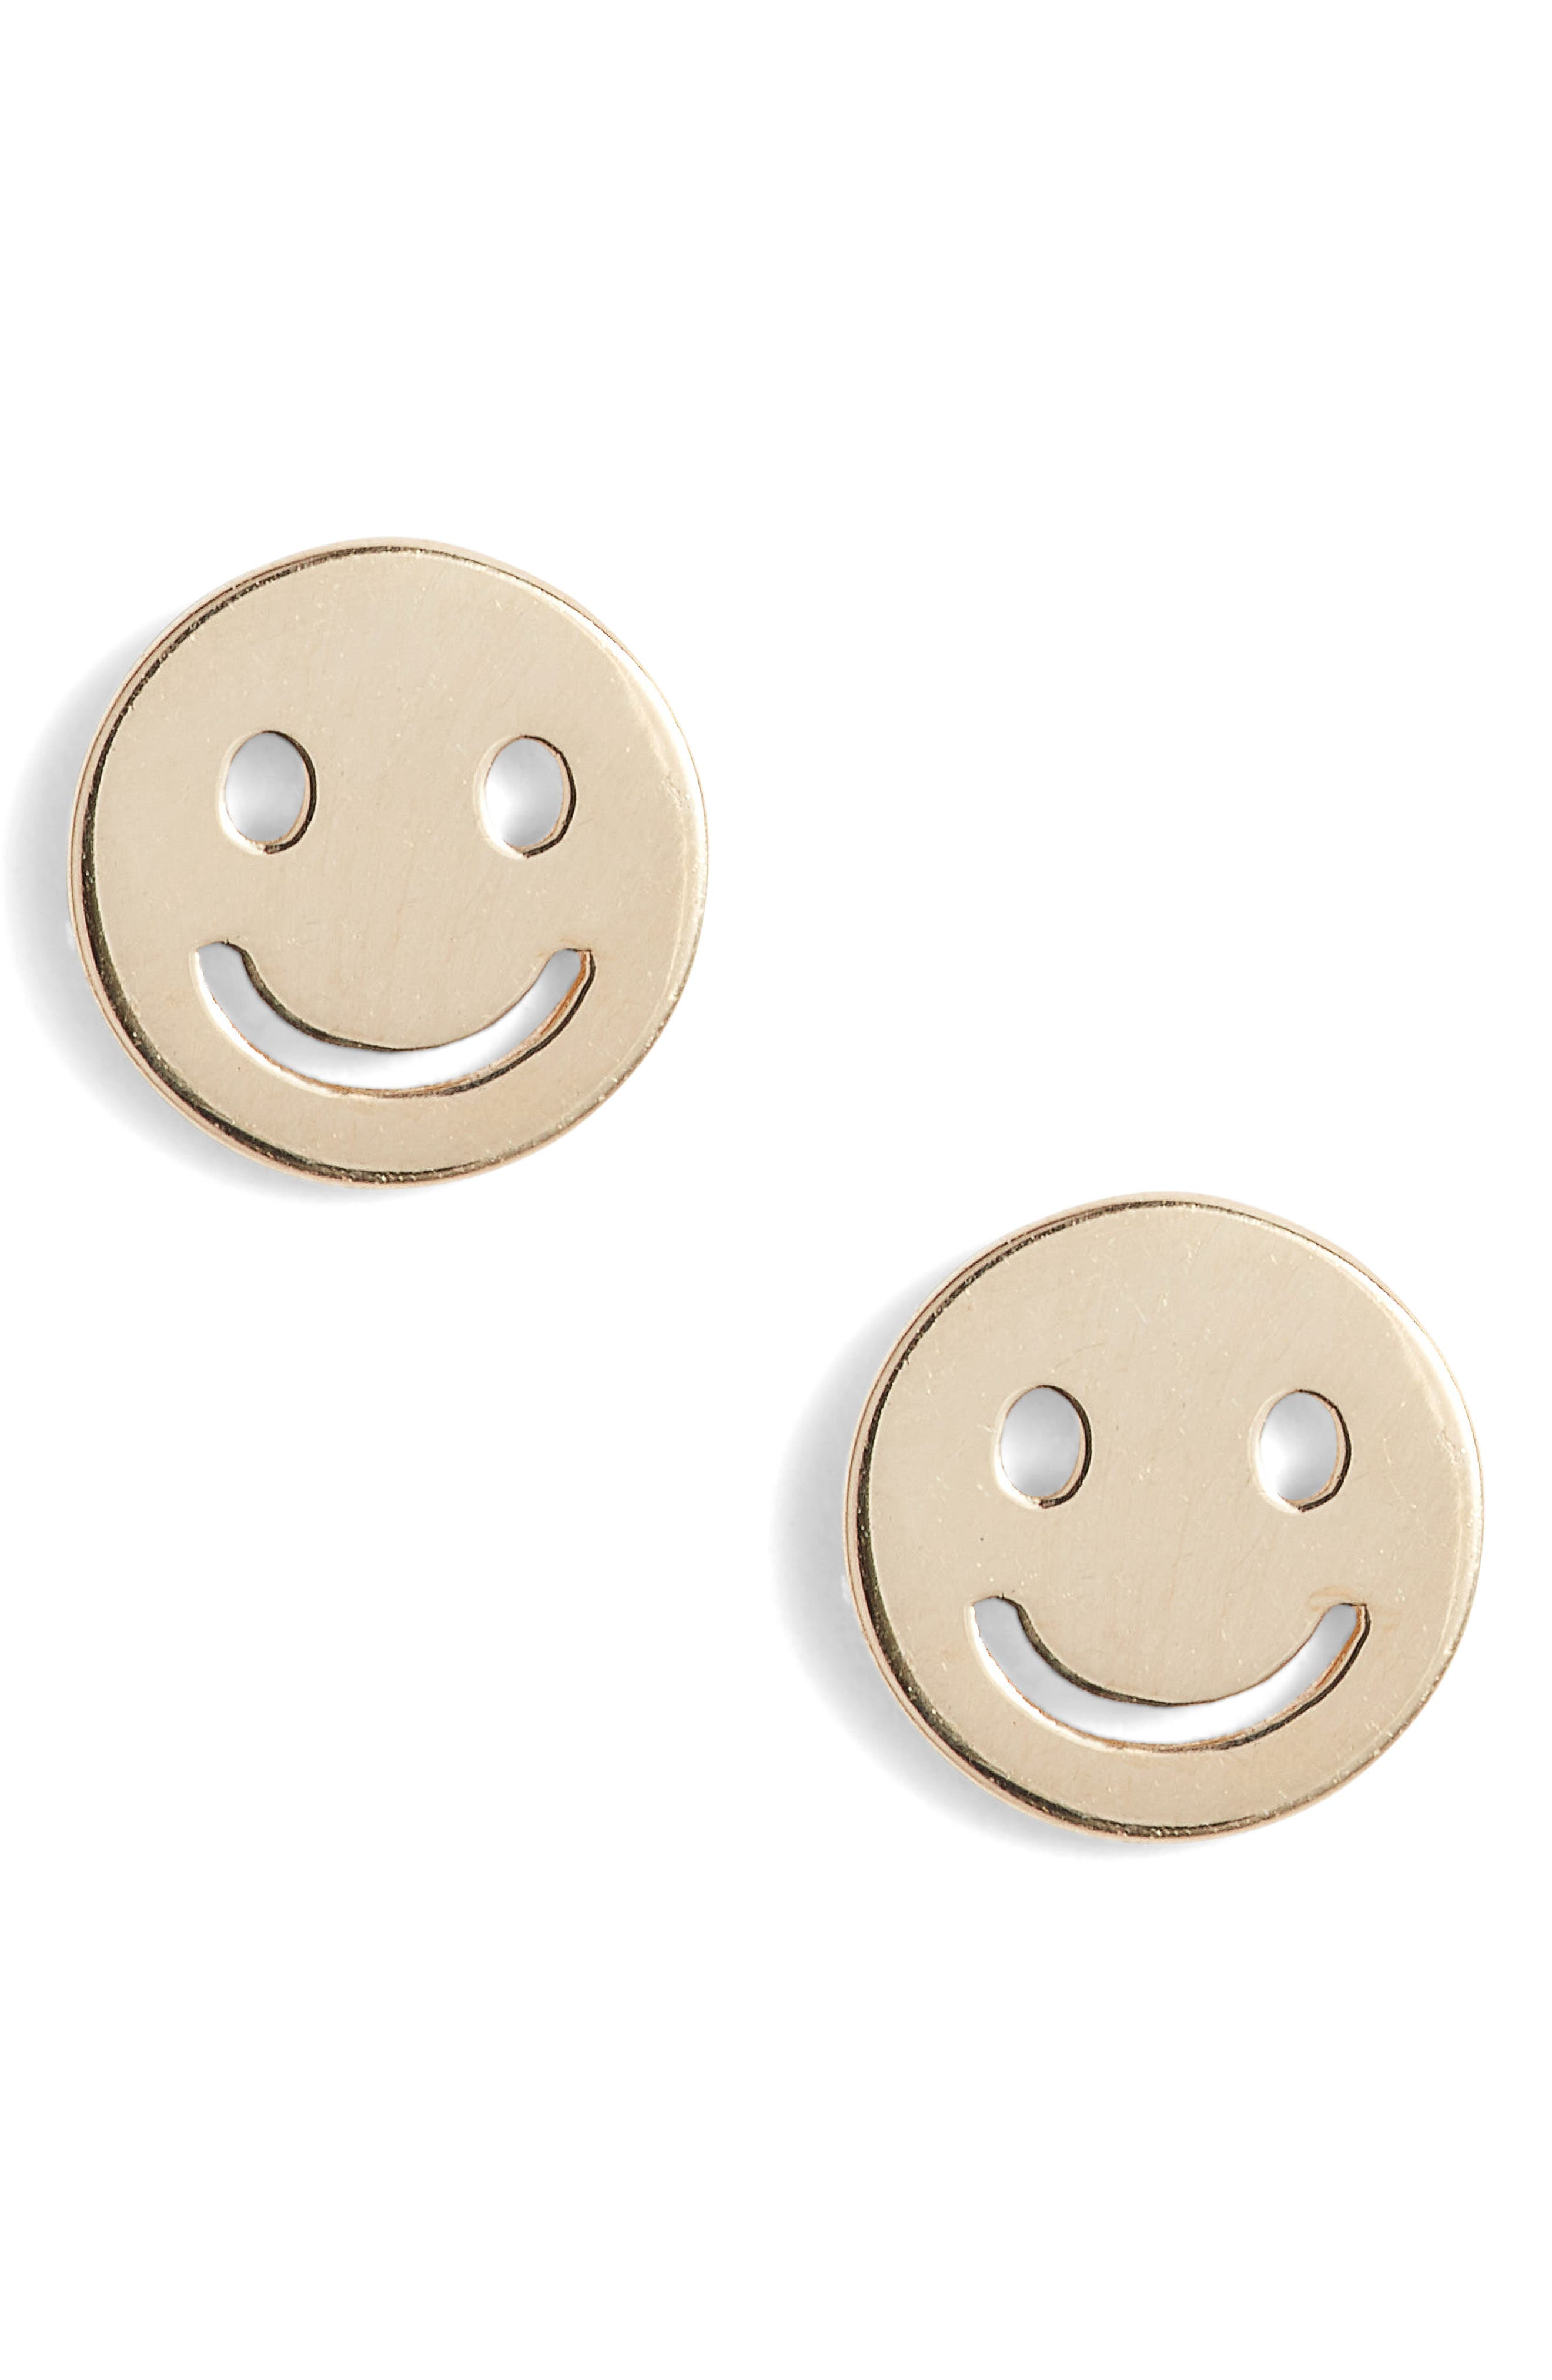 Smiley Face Stud Earrings,                         Main,                         color, Yellow Gold